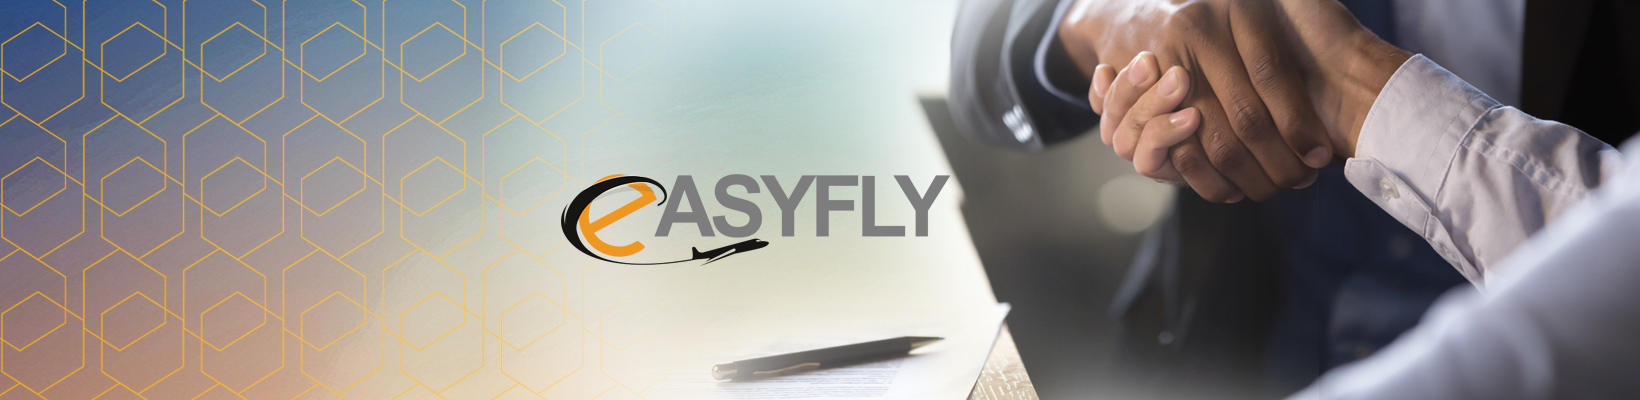 1640x400-easy-fly